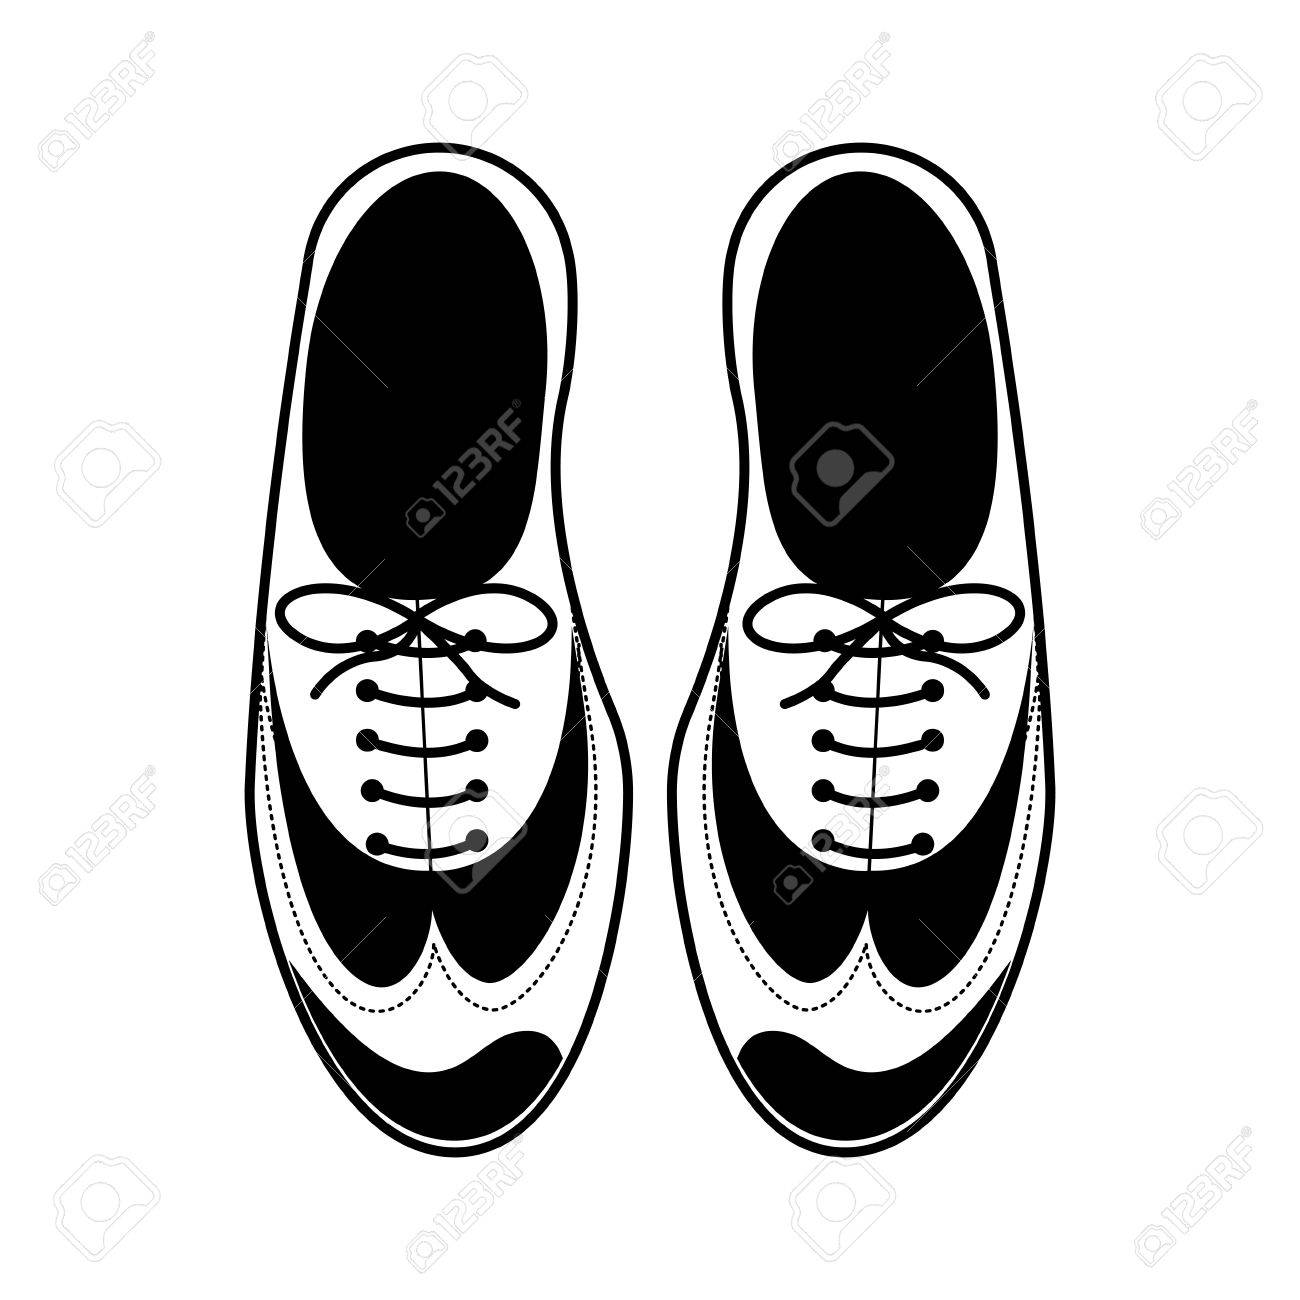 Laces Vector Illustration Royalty